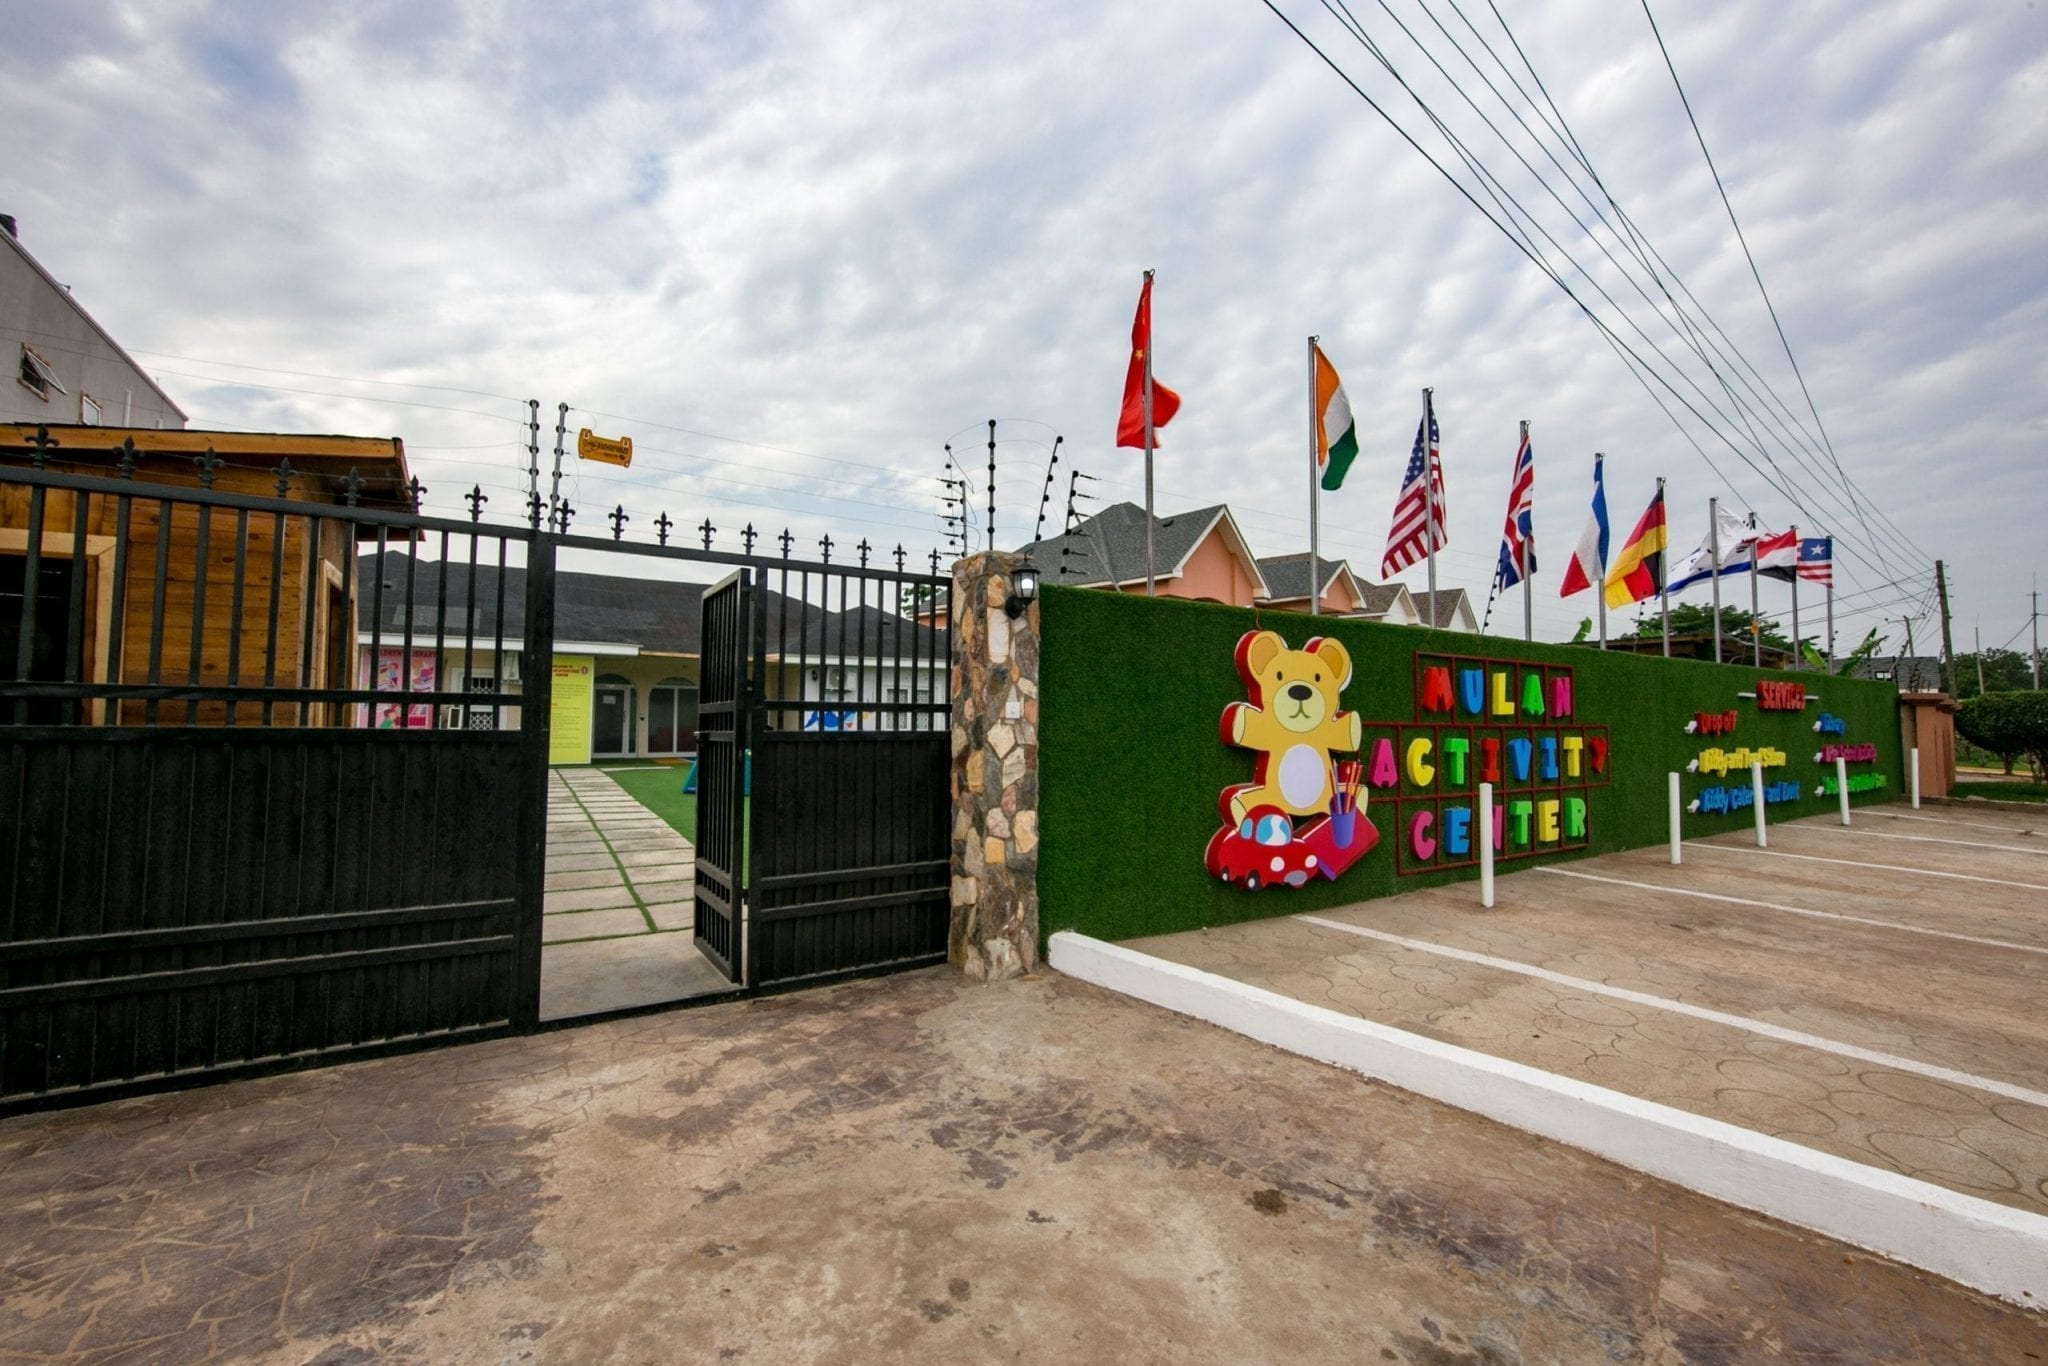 Mulan Activities Center: Taking early childhood development to a newer level